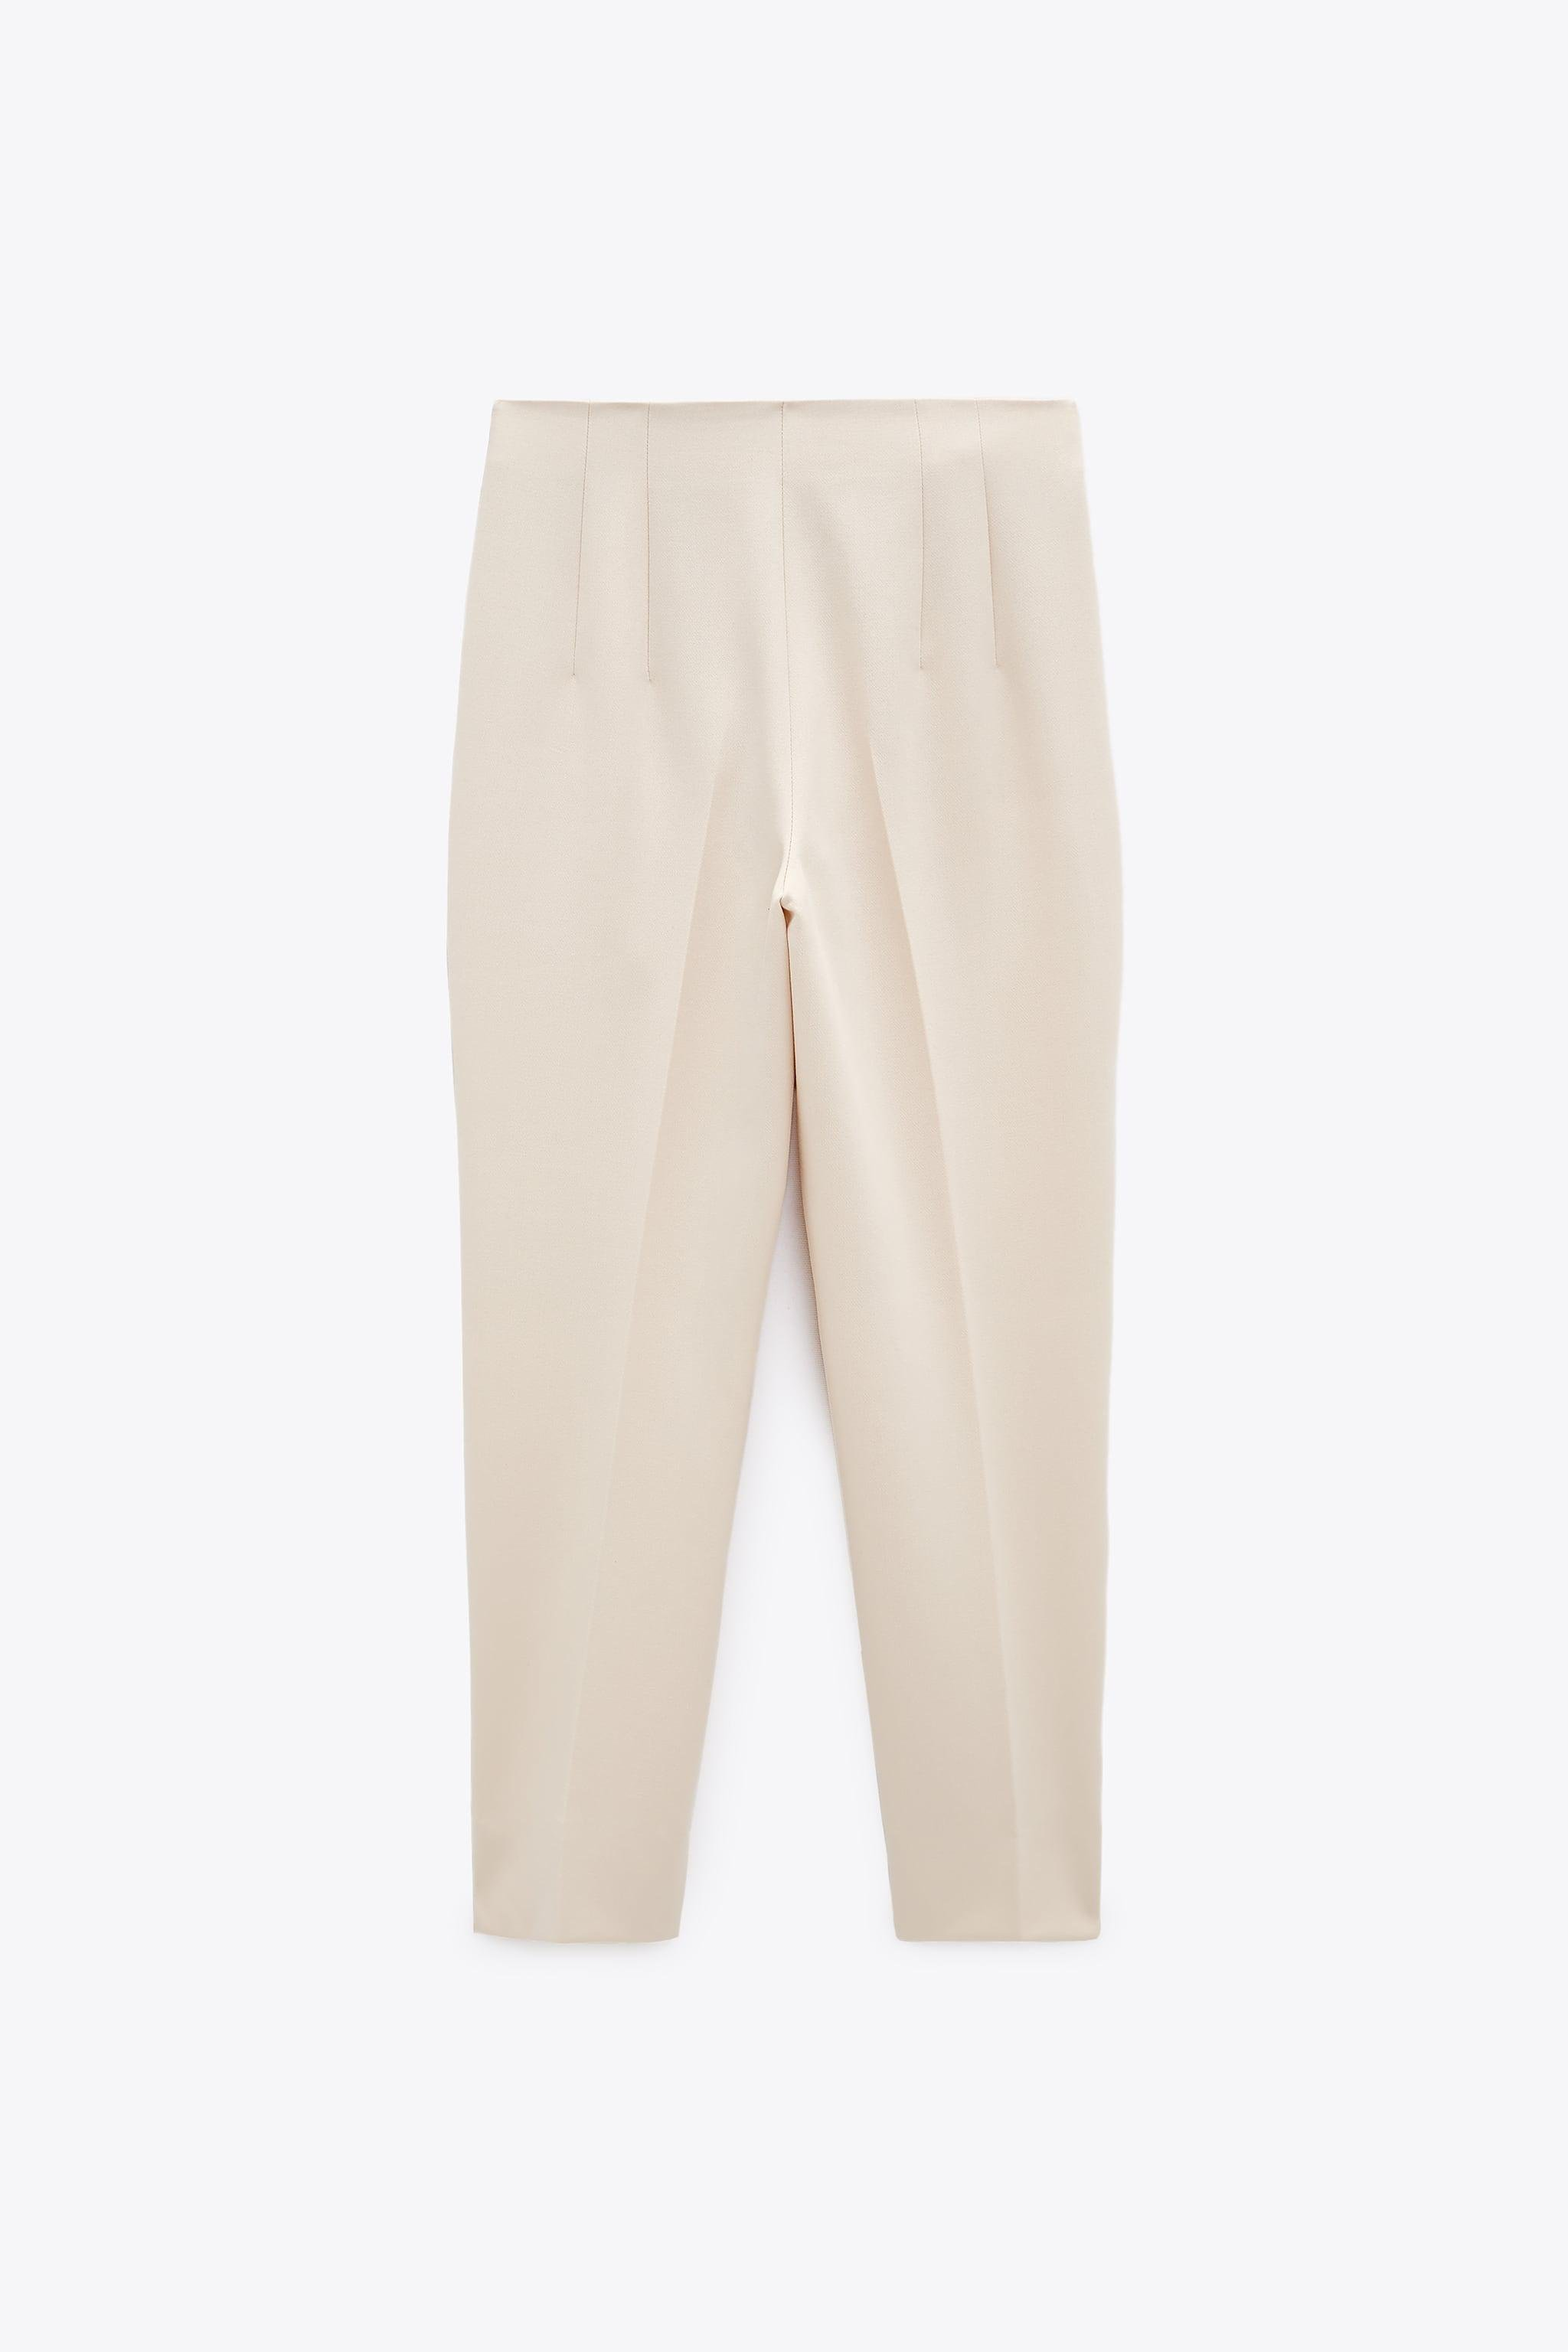 HIGH-WAISTED PANTS WITH VENTS 9